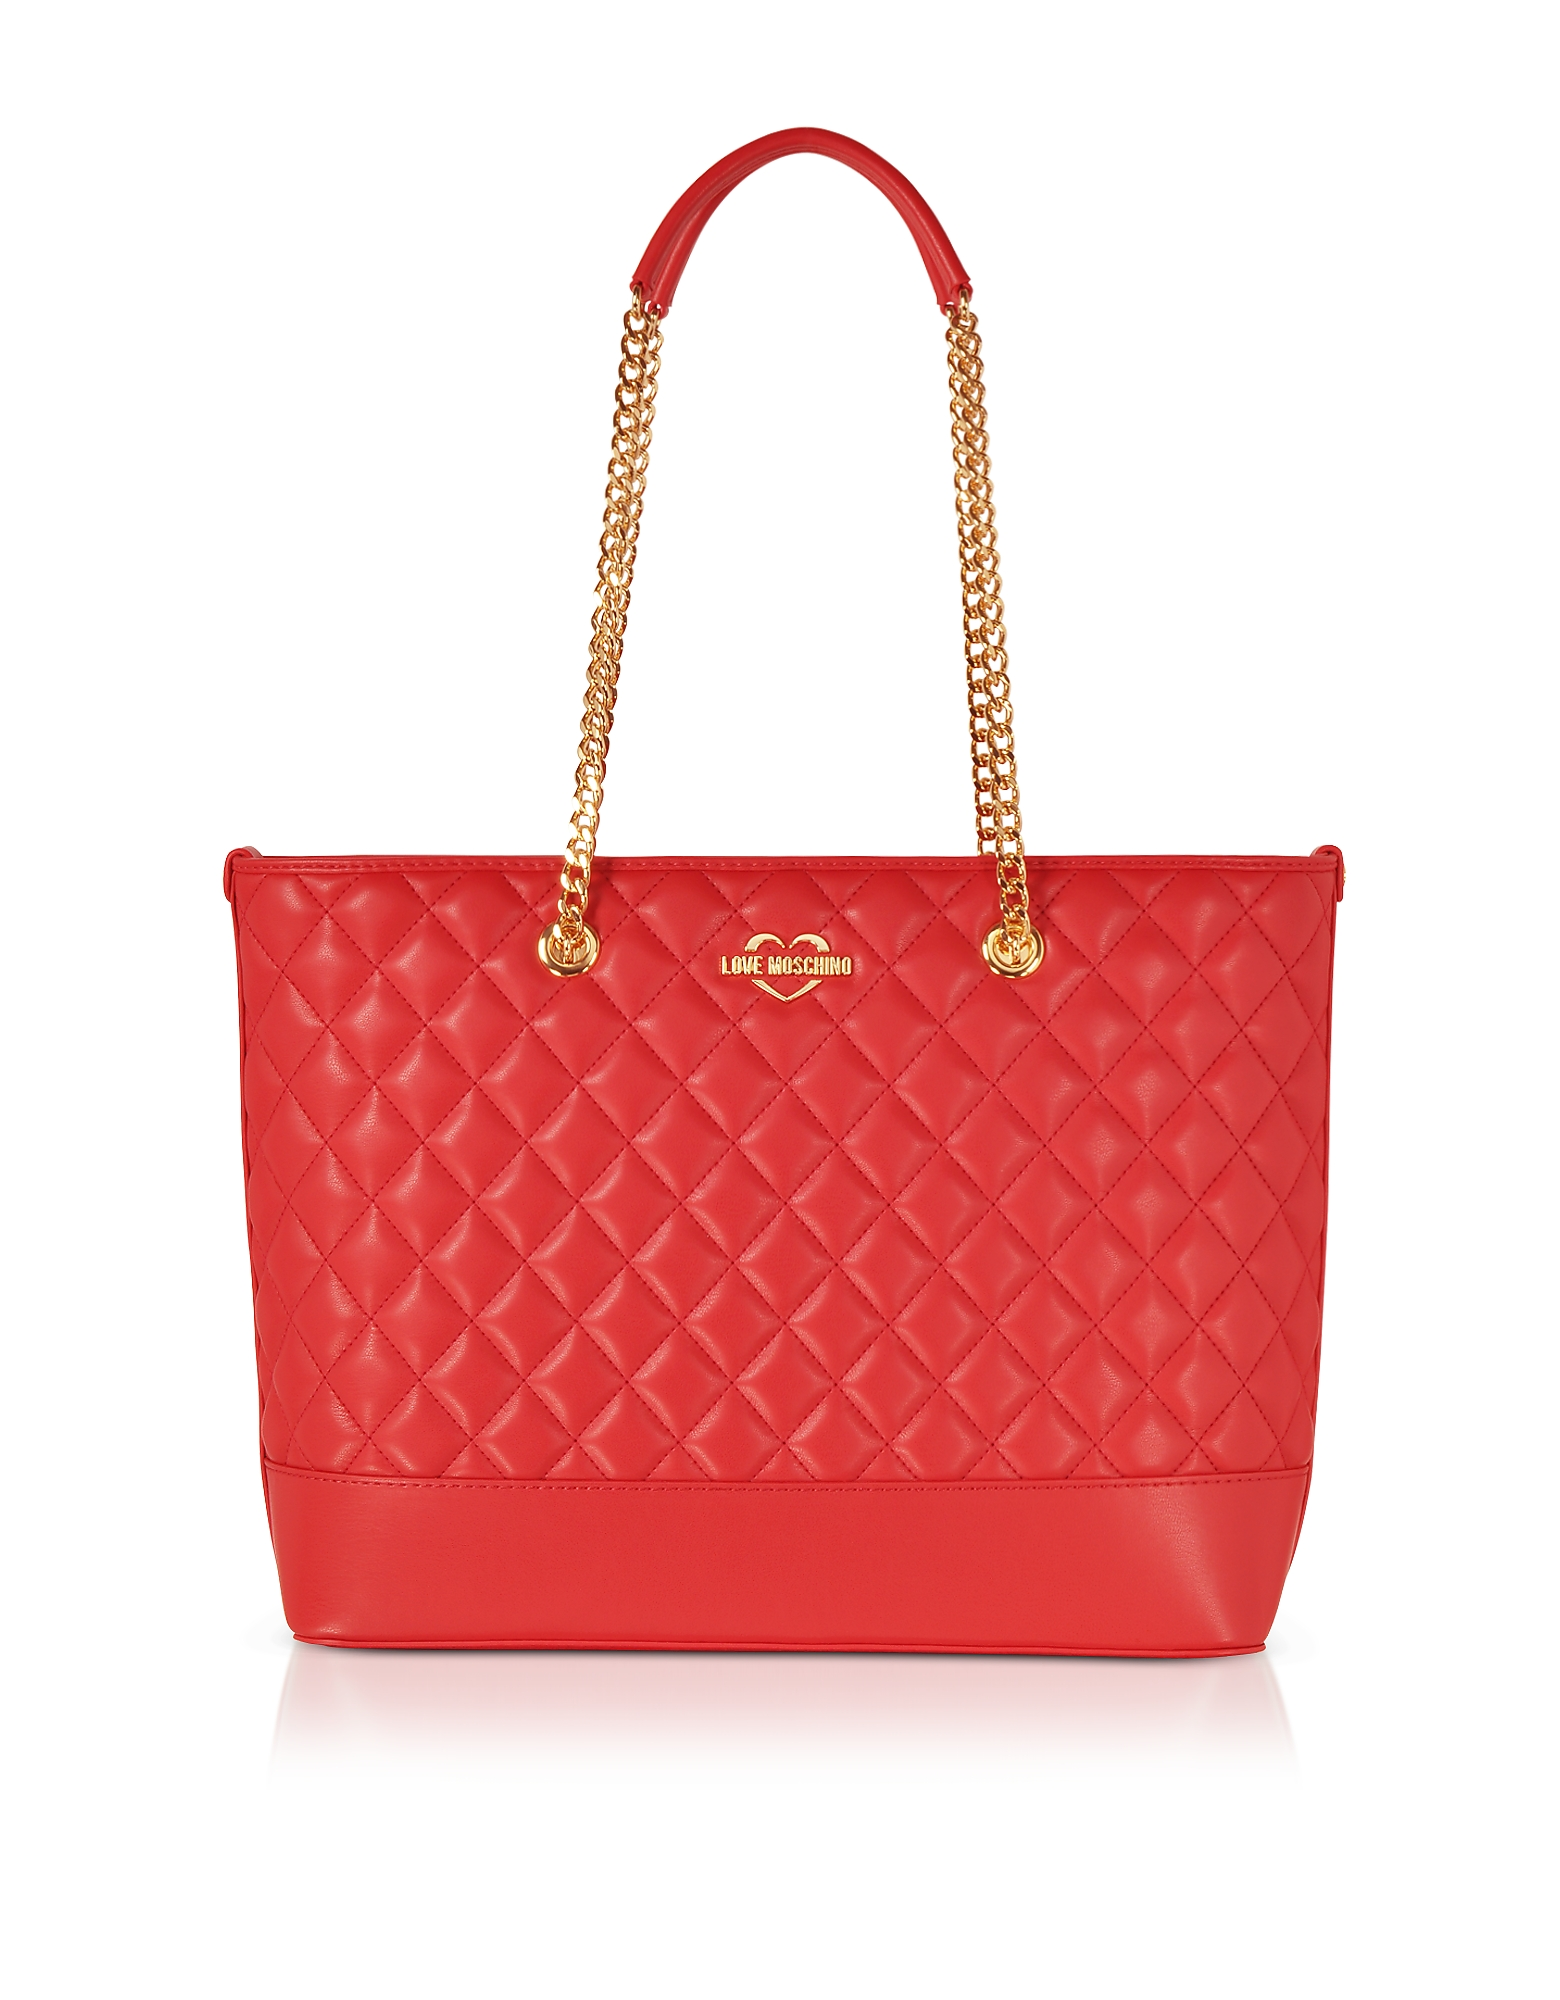 Love Moschino Handbags, Red Superquilted Eco-Leather Tote Bag